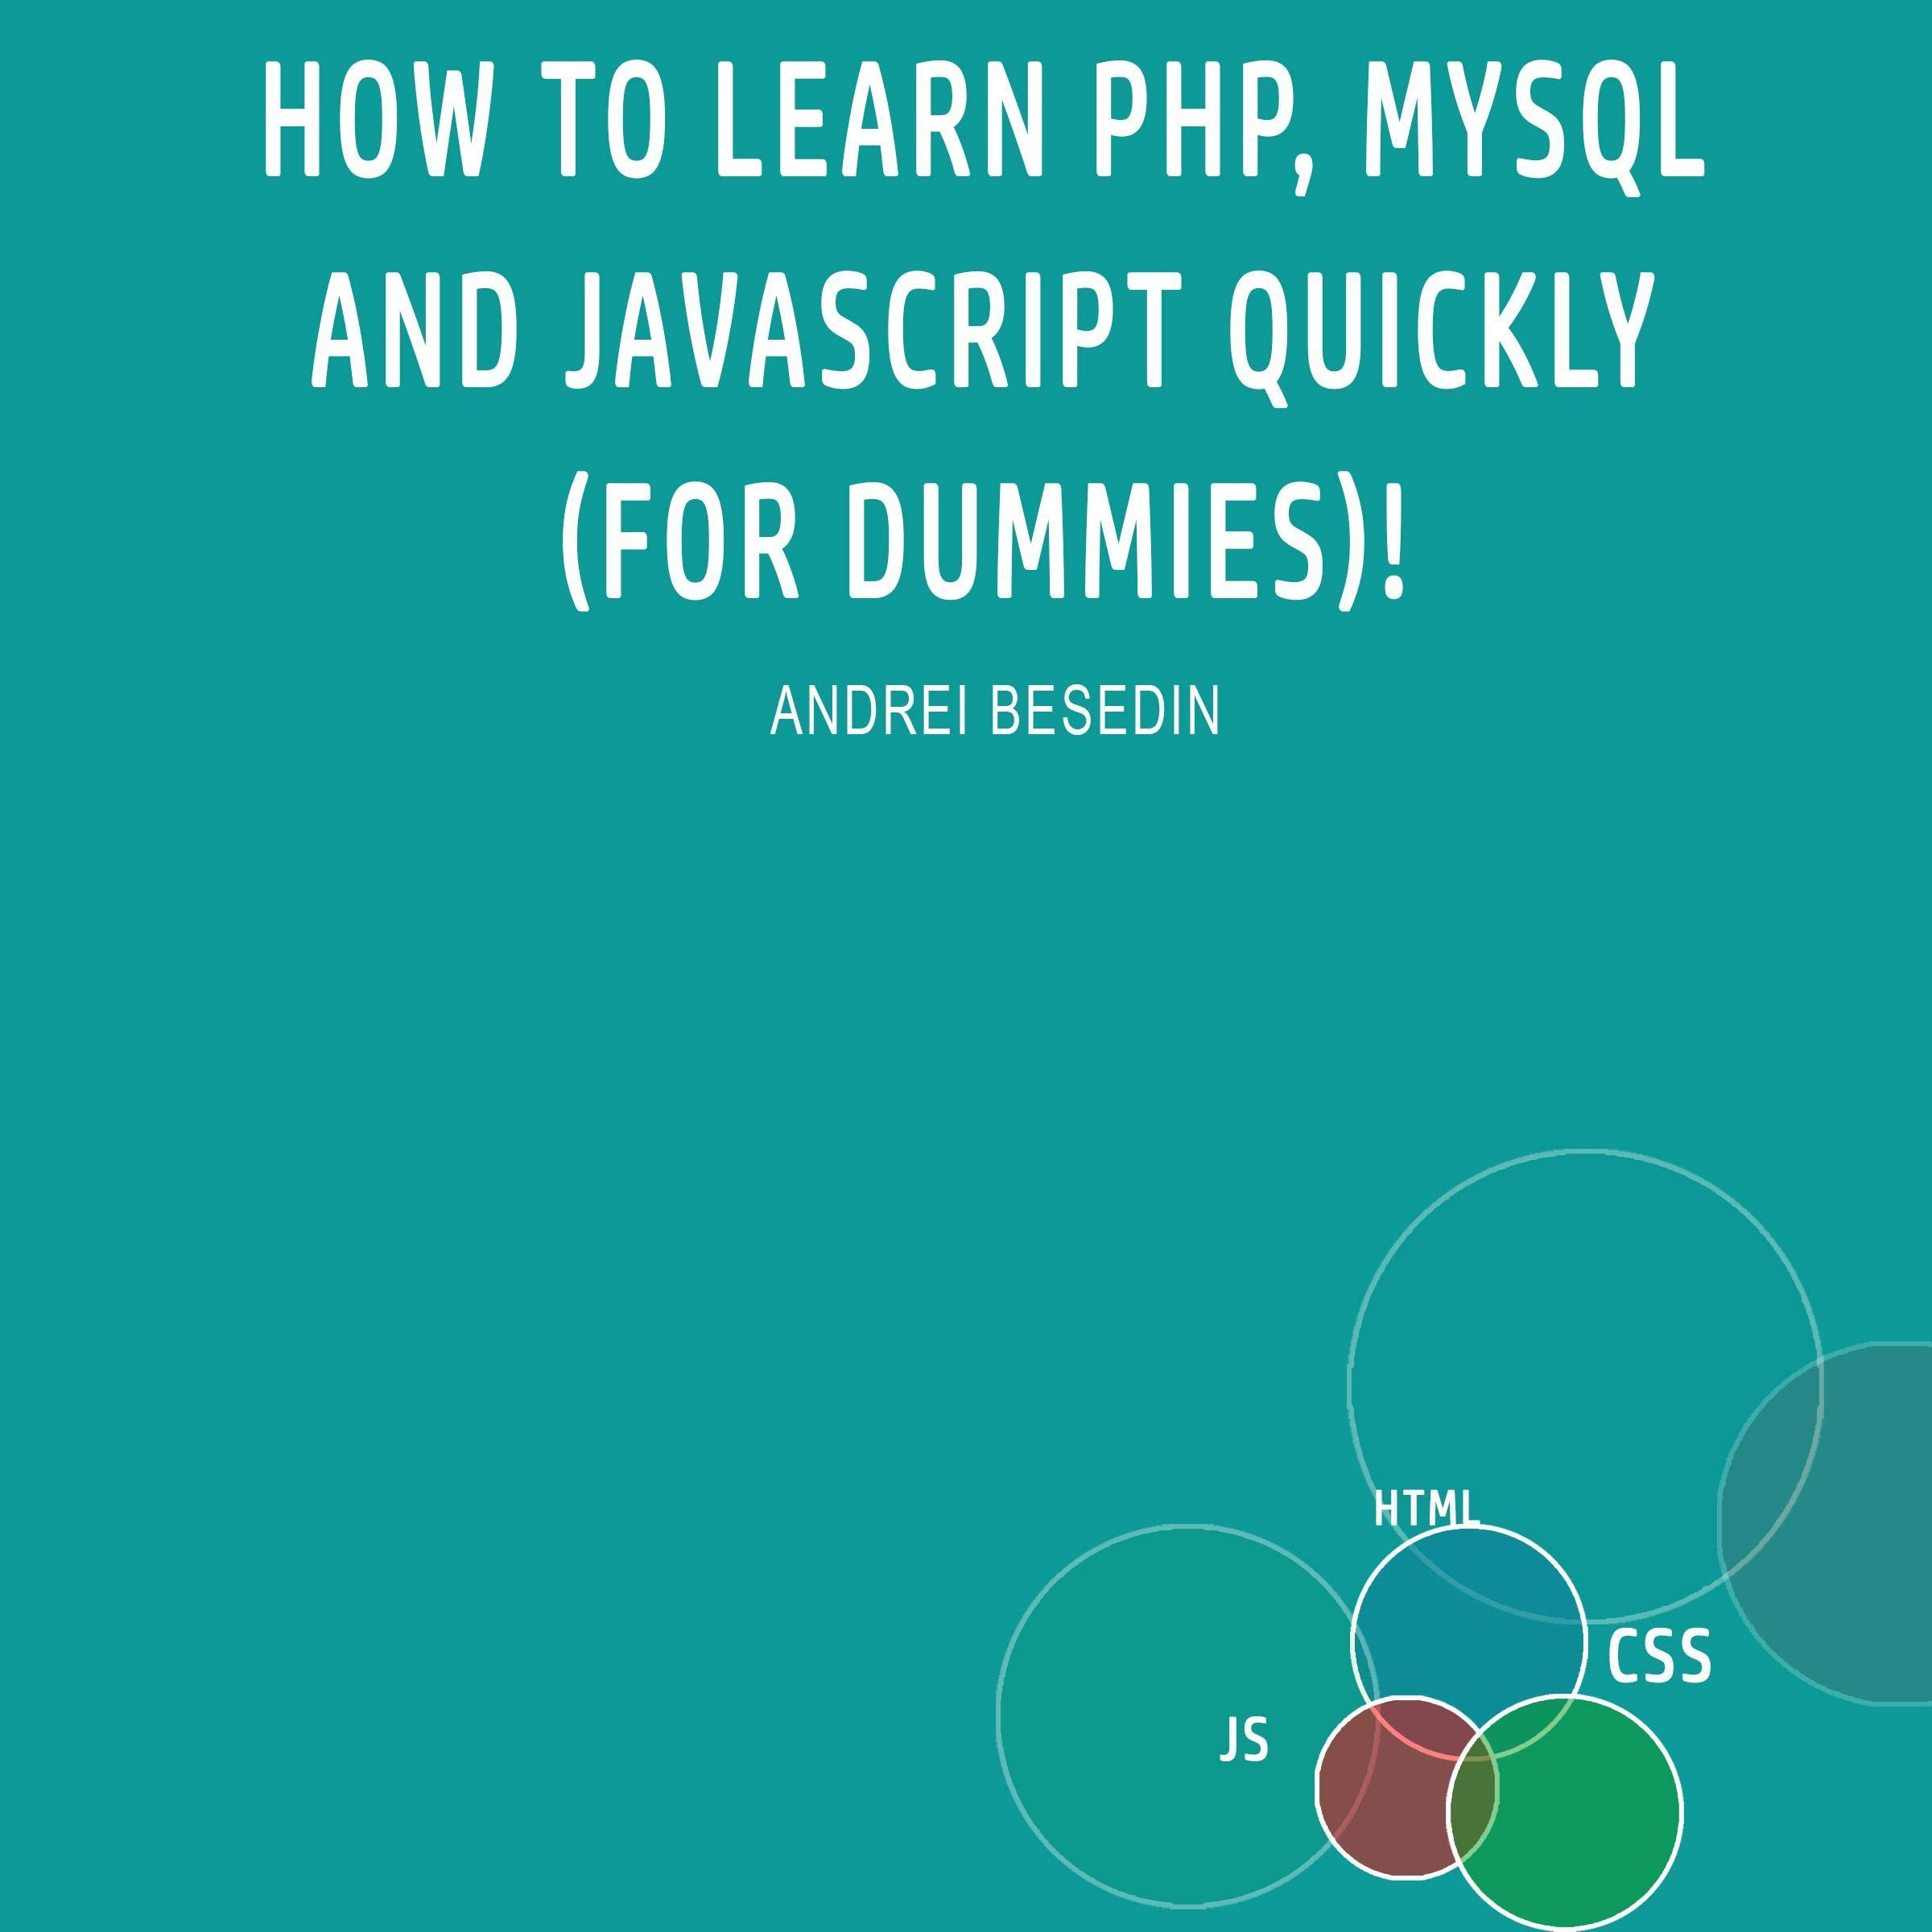 How to Learn PHP, MySQL and Javascript Quickly (For Dummies)!